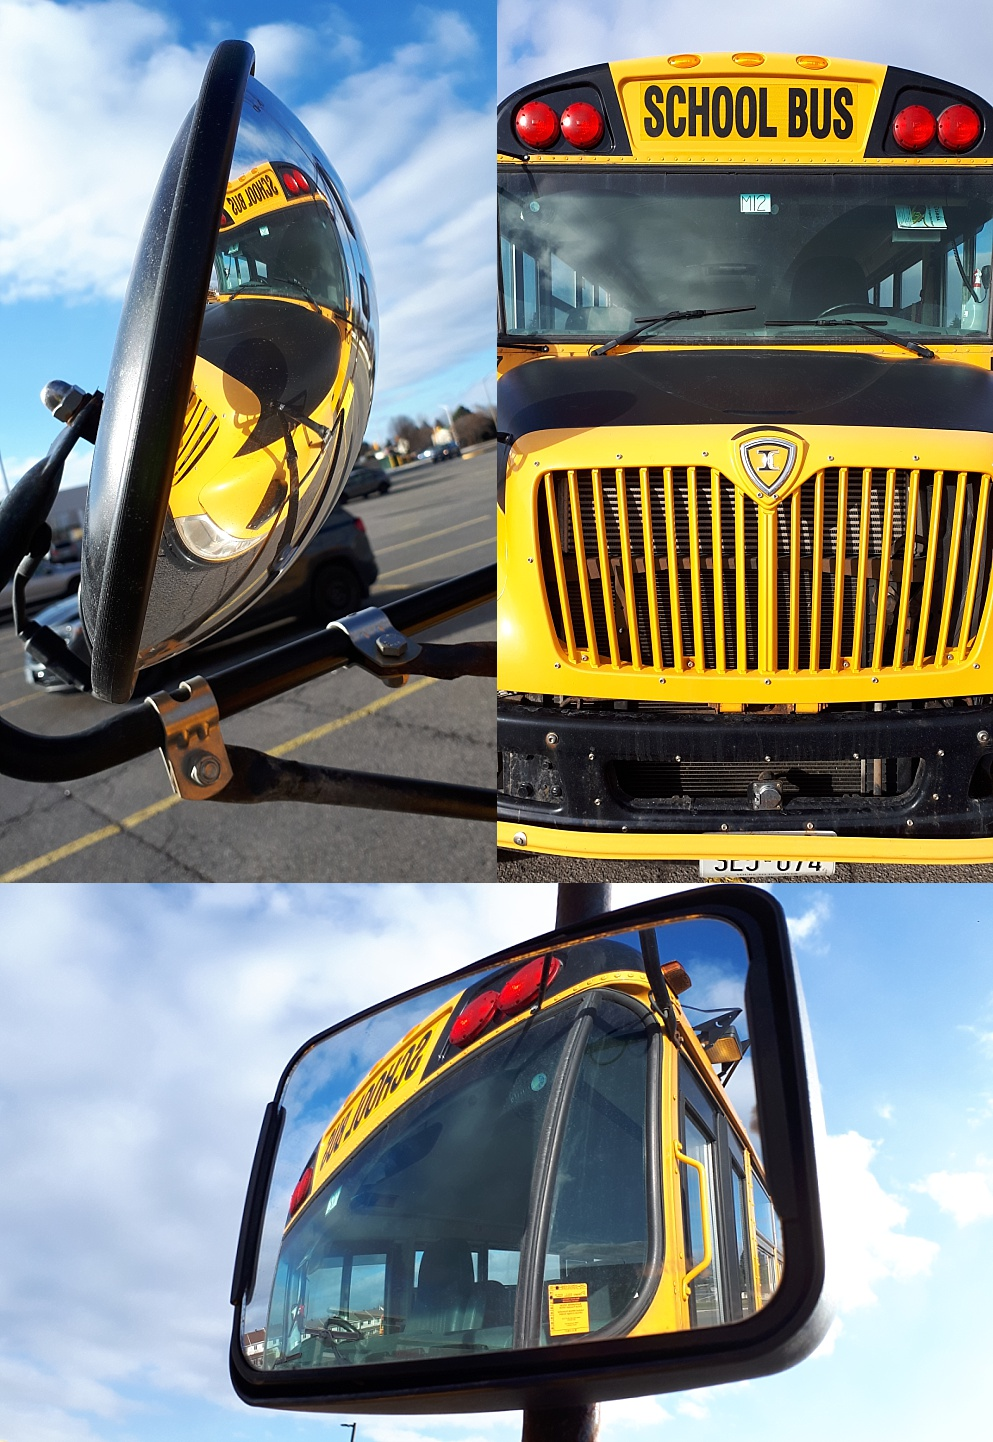 3-photo collage of schoolbus and its reflection in its own mirrors